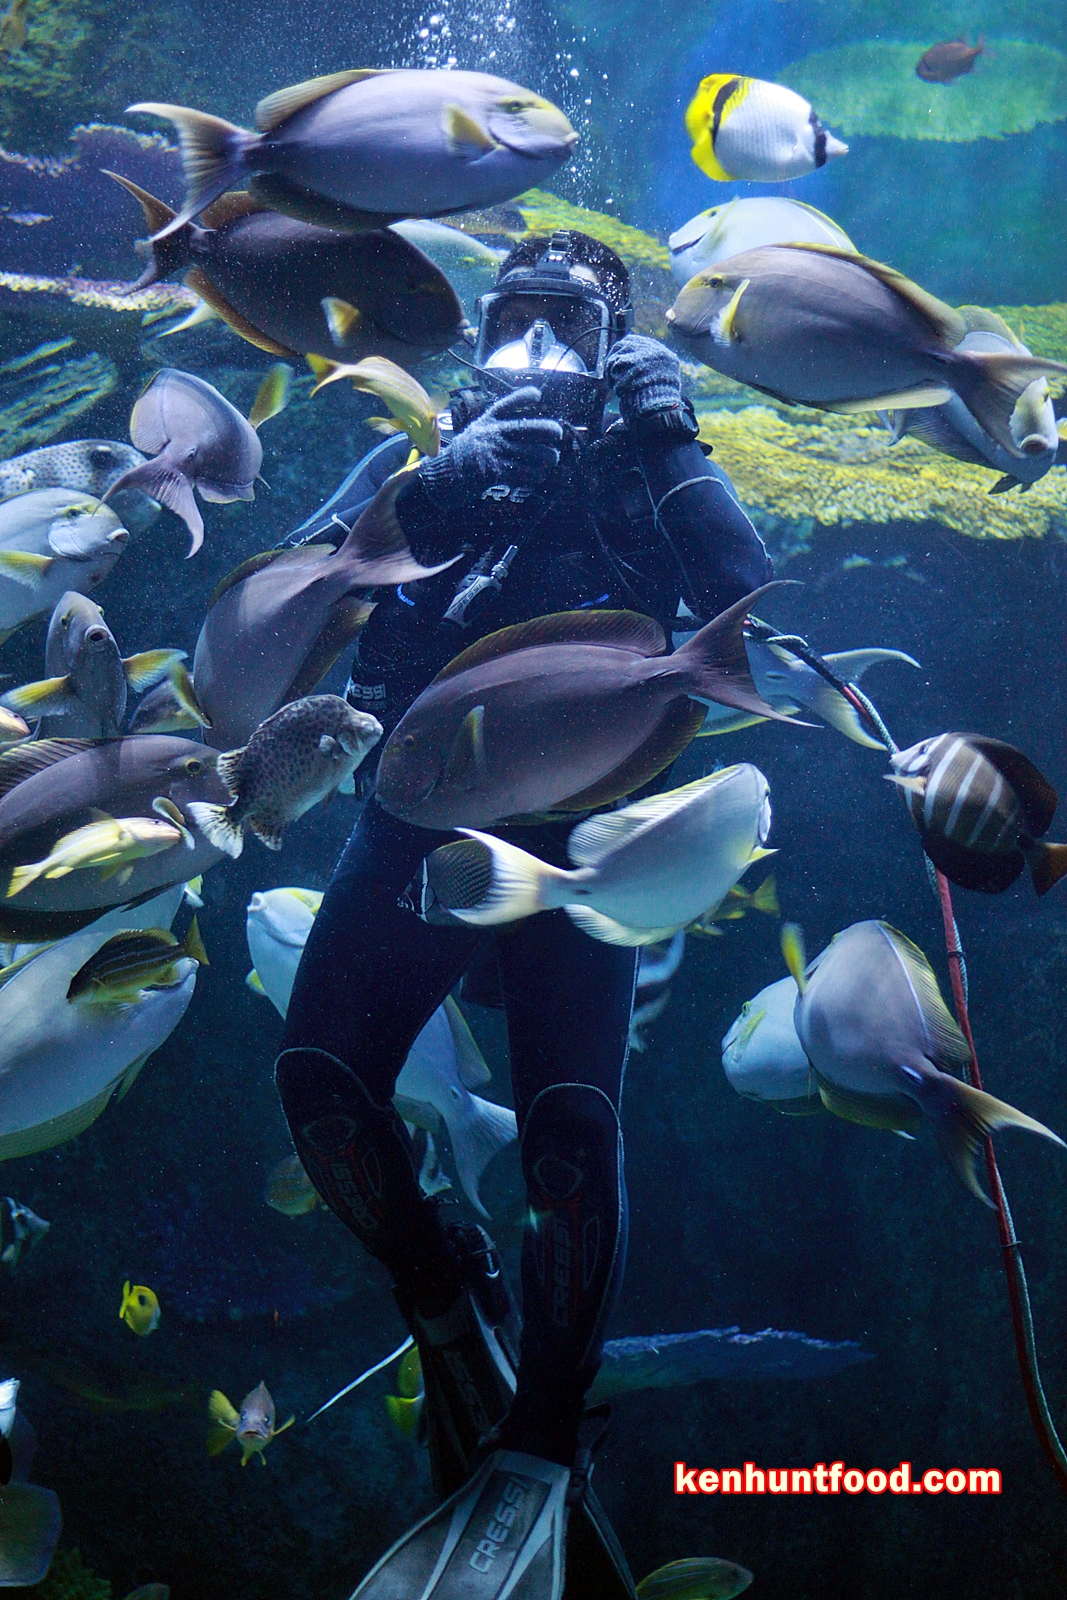 Ken Hunts Food Suggested Itinerary Bangkok Thailand Travel And Et Ticket Sea Life Ocean World Aquarium Only Child Partake In A Fun Filled Family Activities At One Of The Largest Aquariums South East Asia Housed Within Iconic Siam